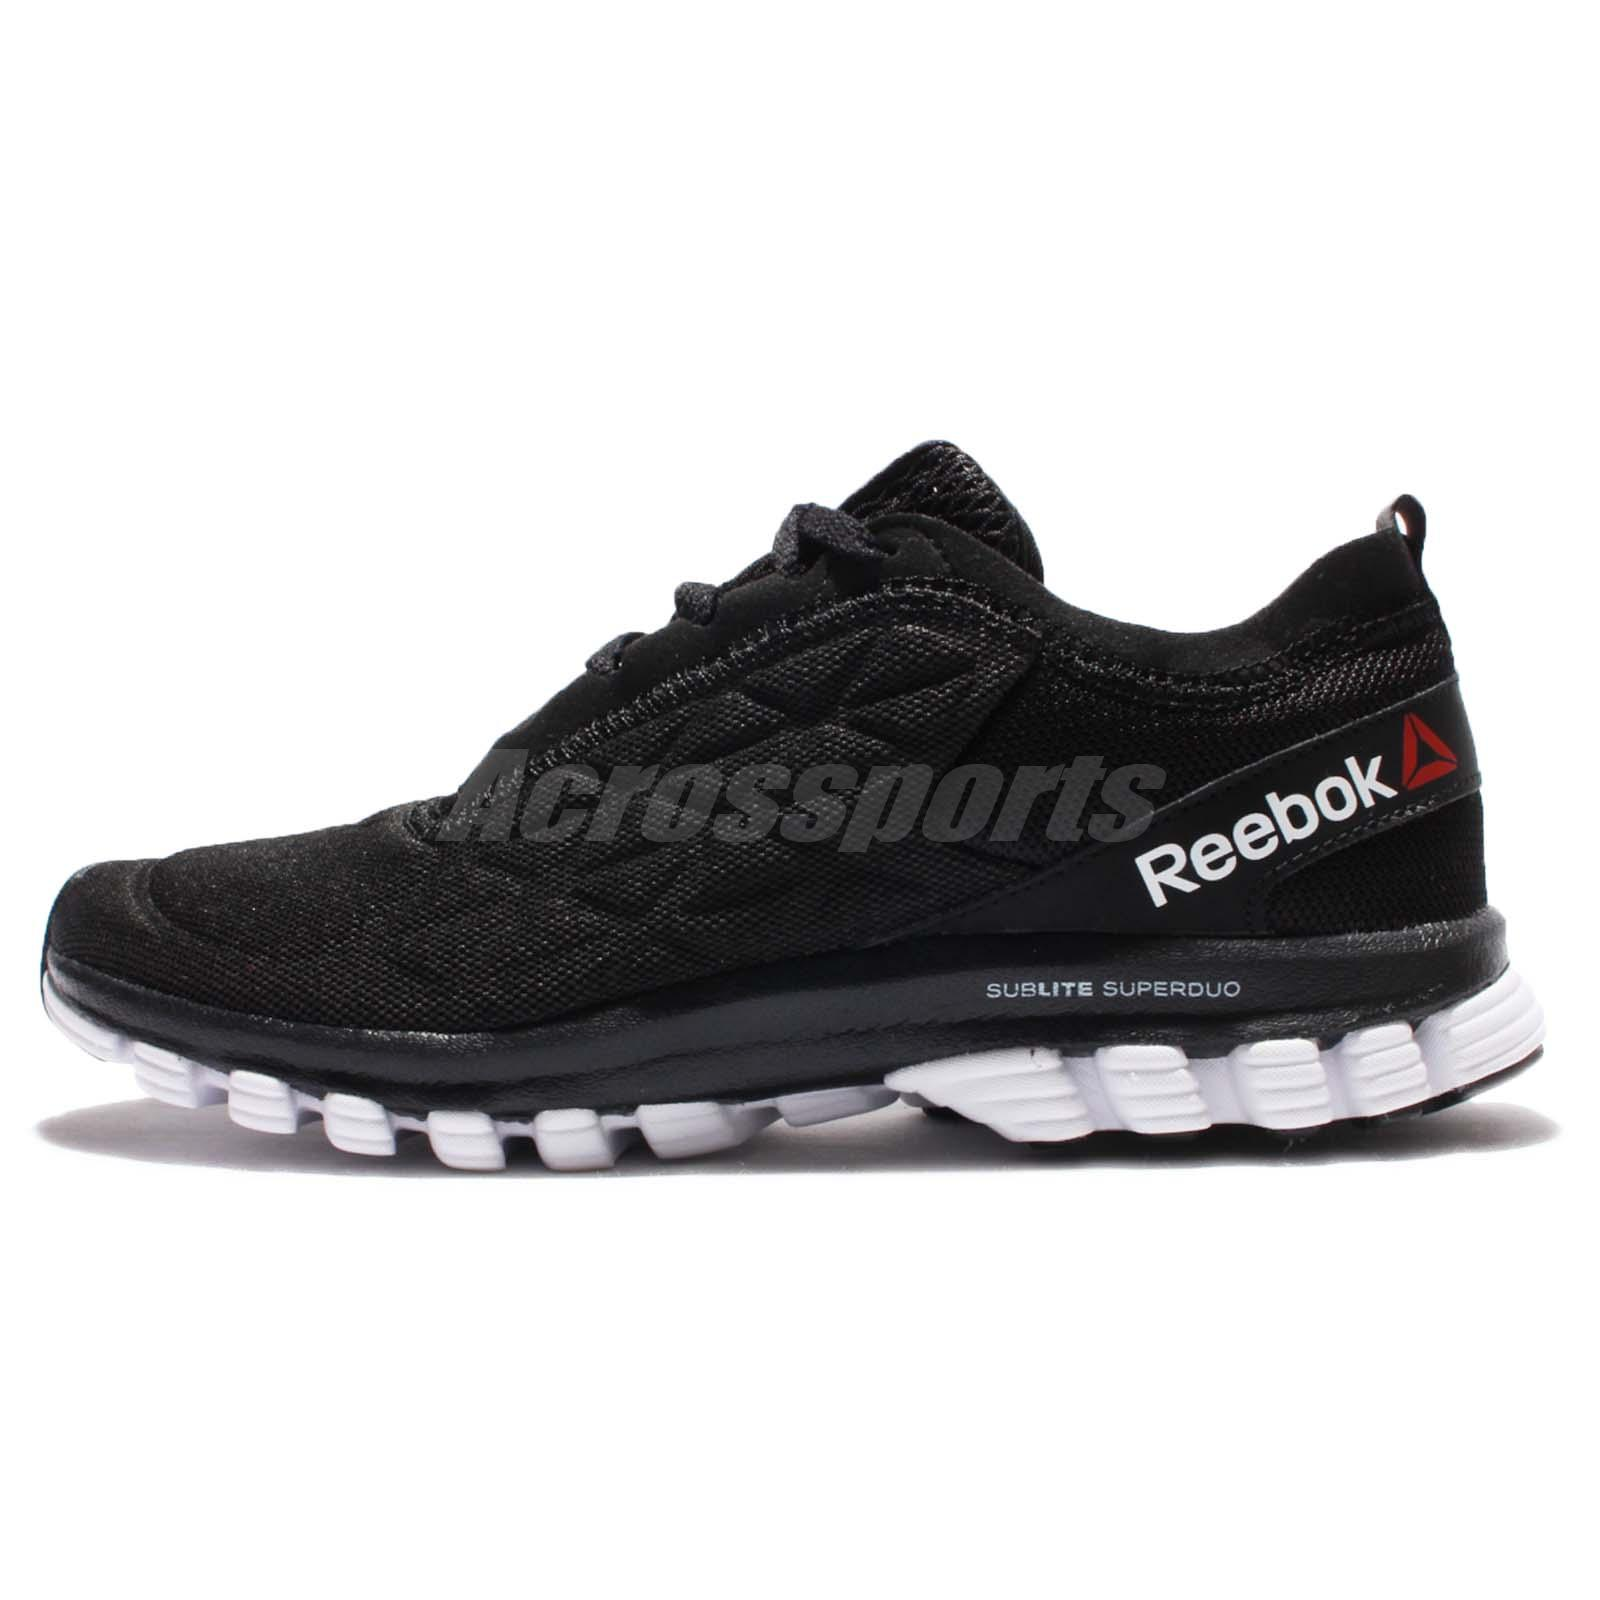 88f9c4945af Reebok Sublite Super DUO 3.0 III Black White Women Running Shoes Sneakers  AR2683